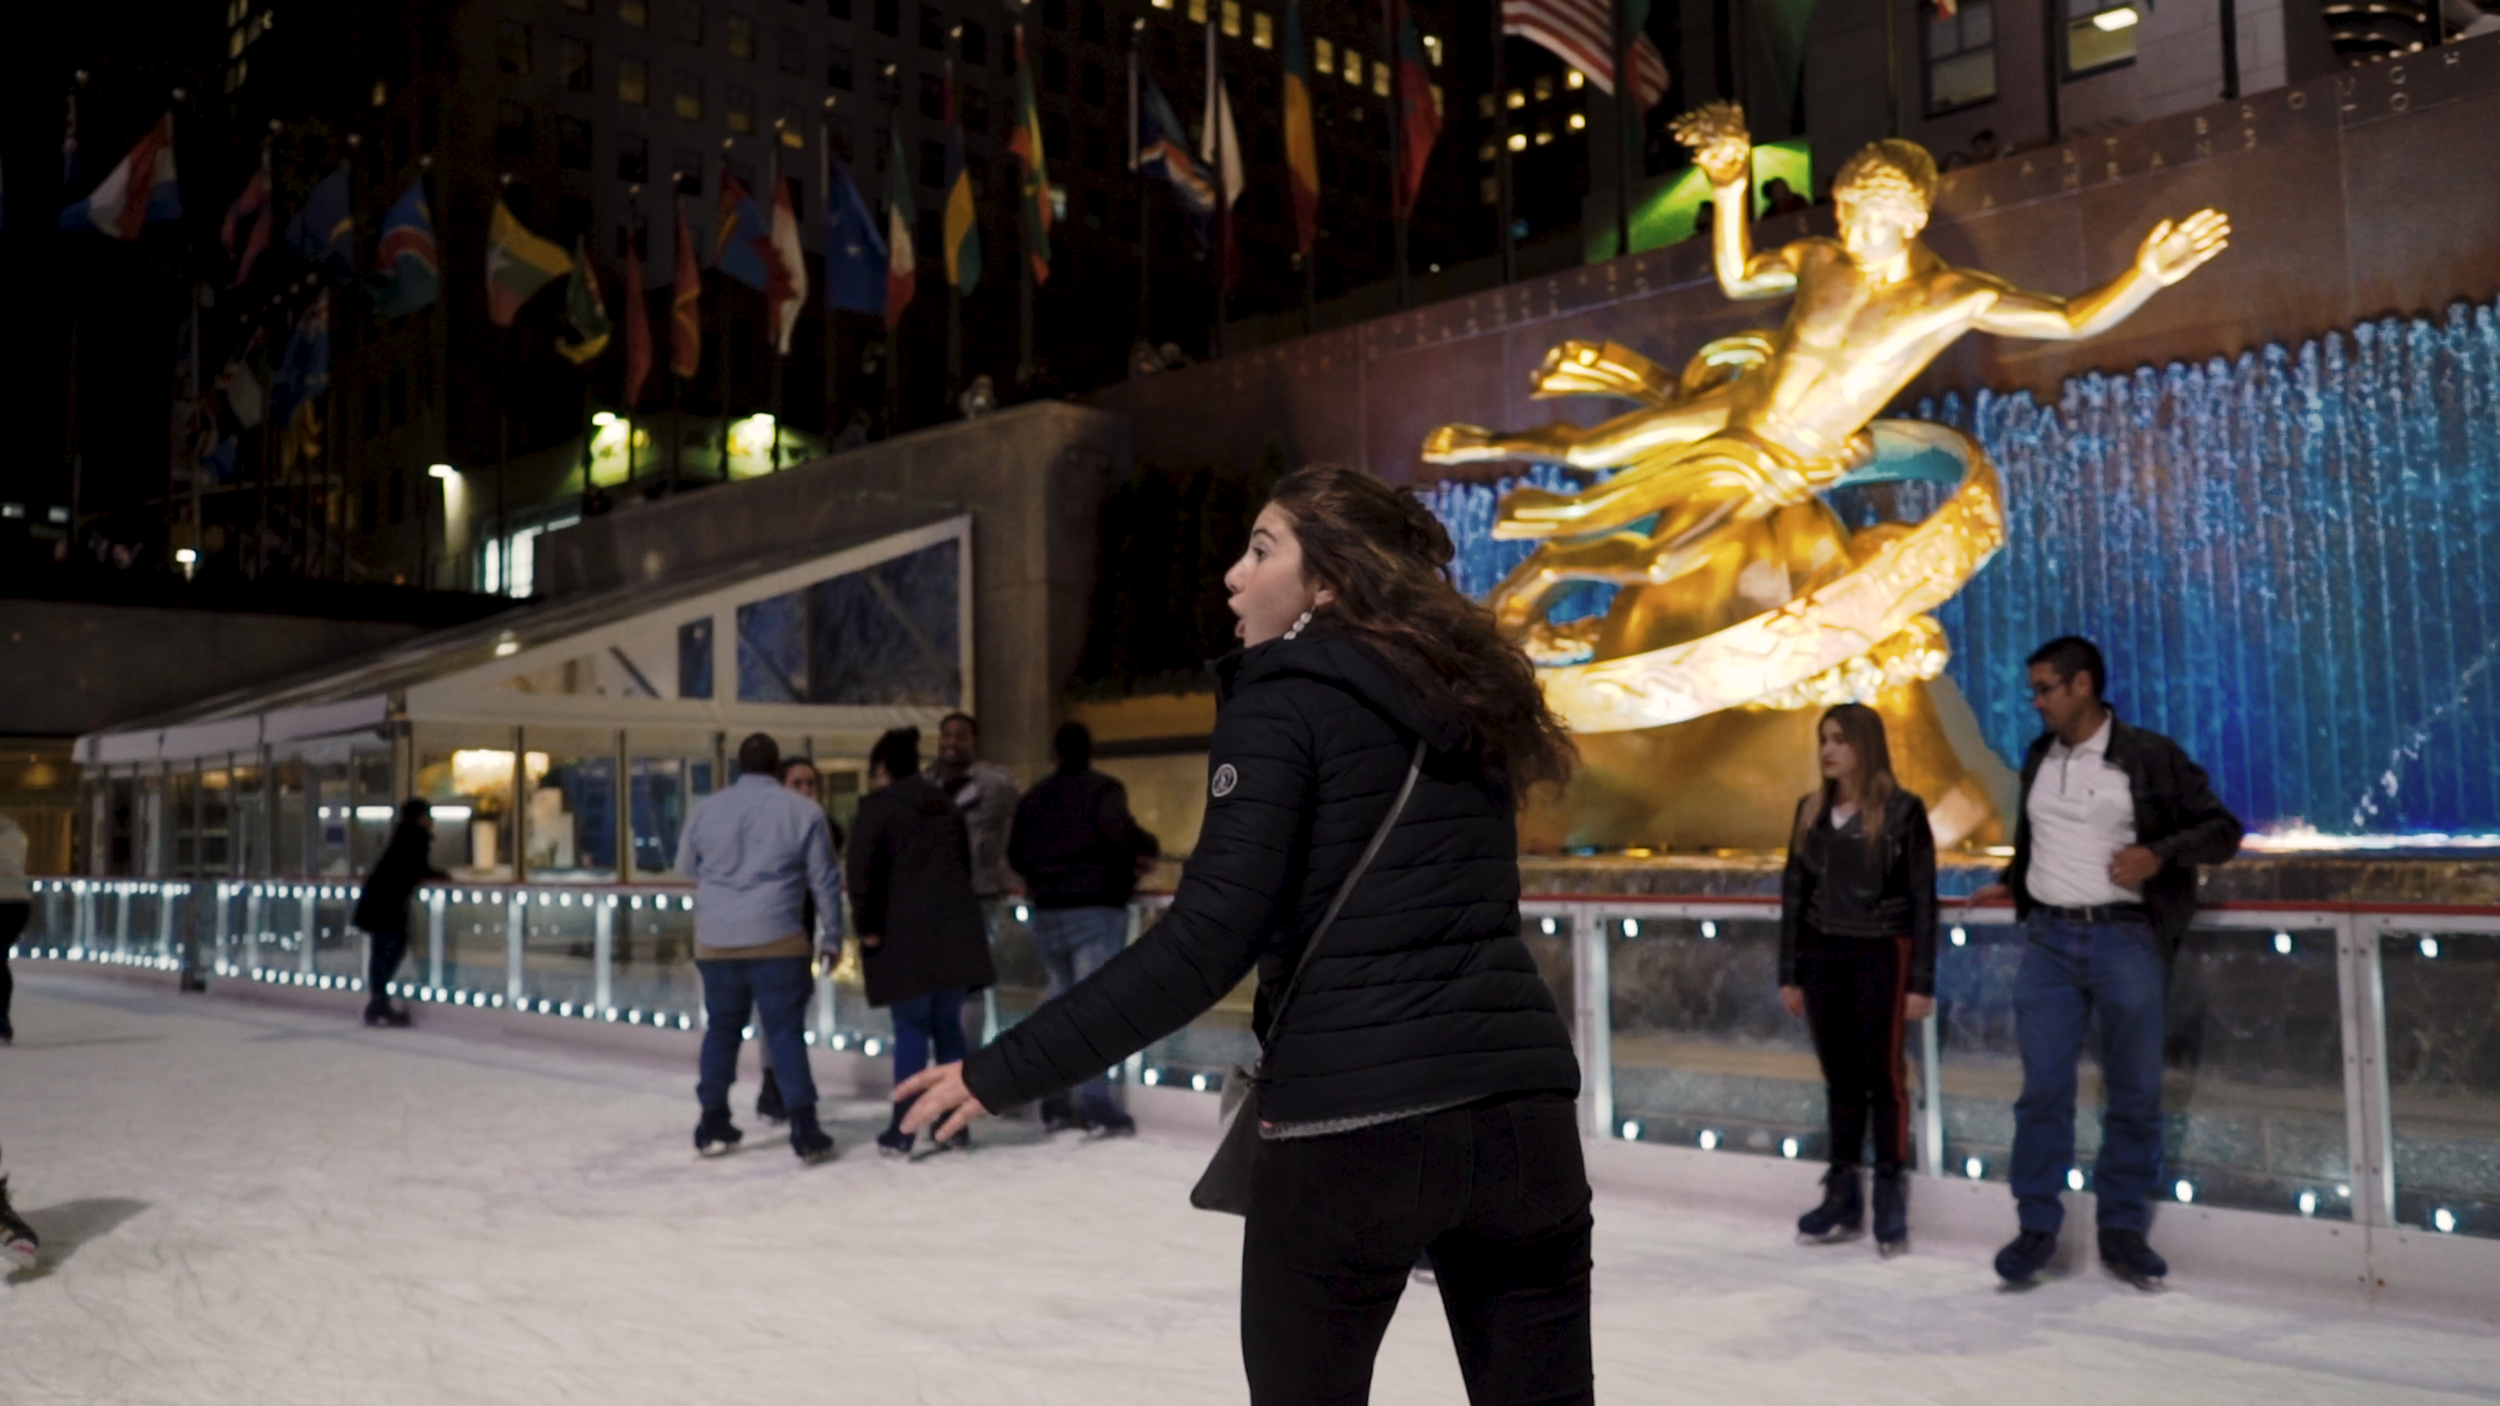 ROCKEFELLER ICE SKATING - it was october so more like water skating